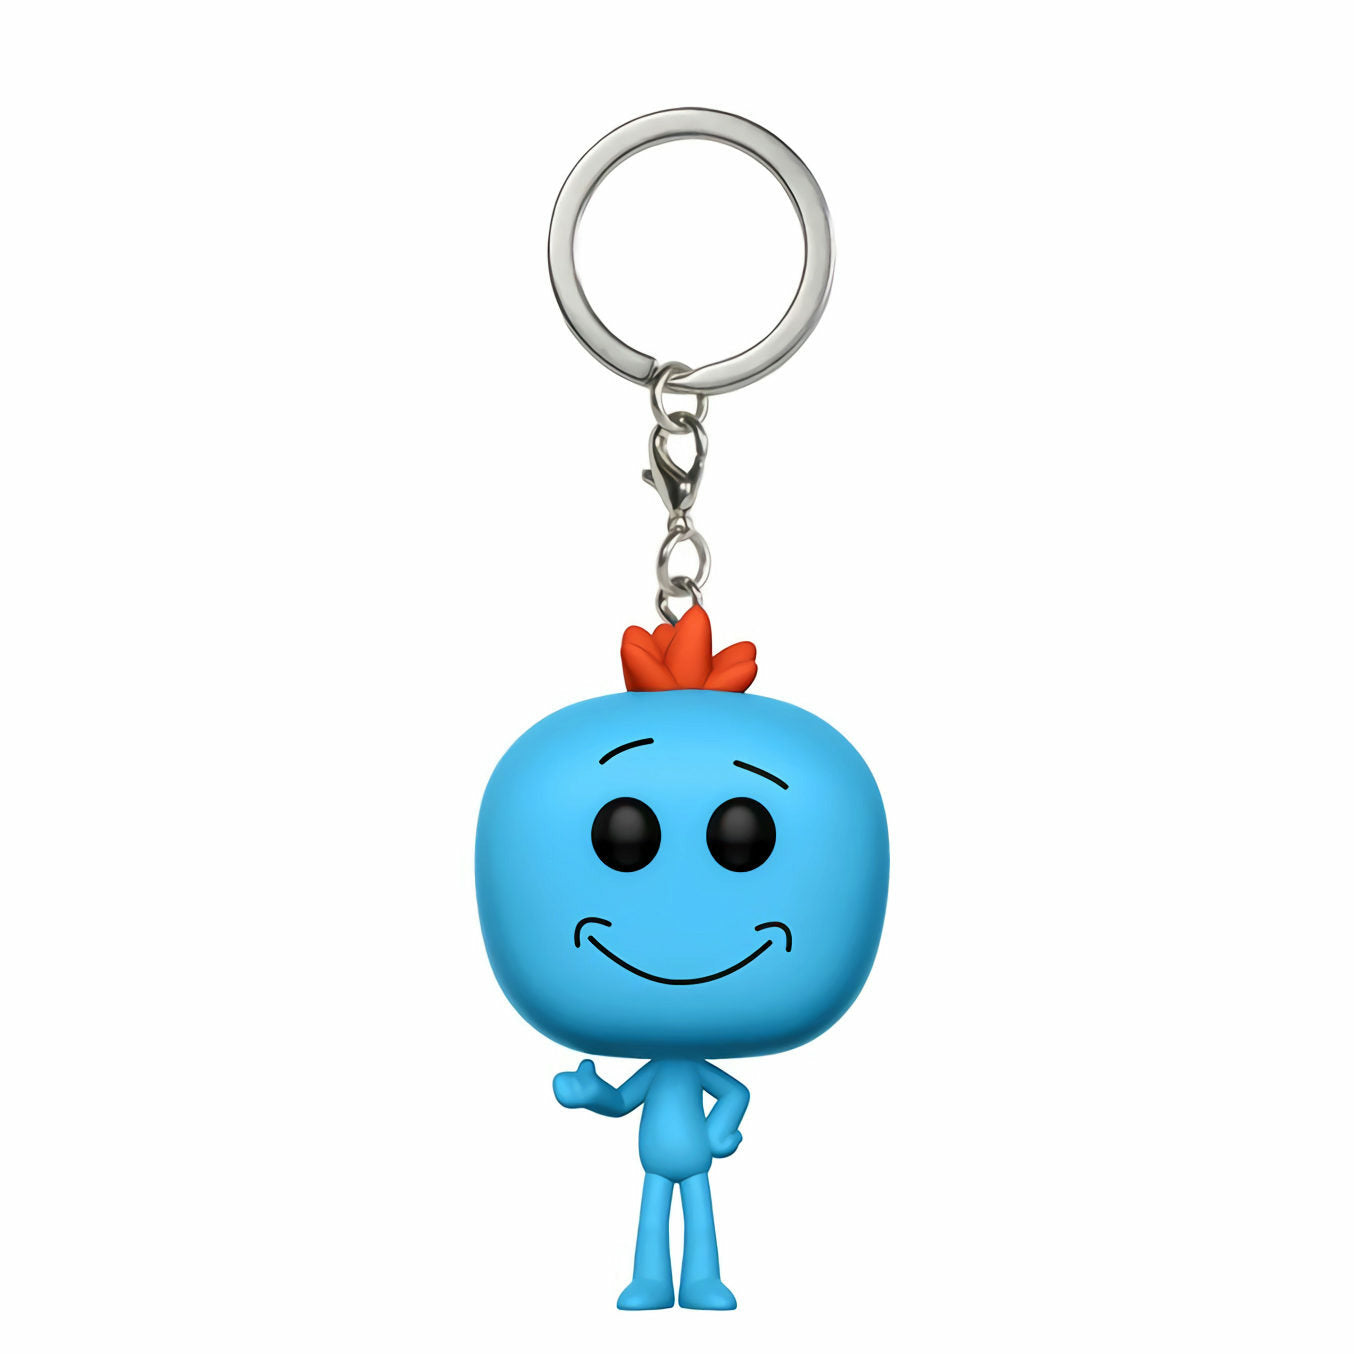 Rick and Morty Mr. Meeseeks Pocket Pop! Keychain